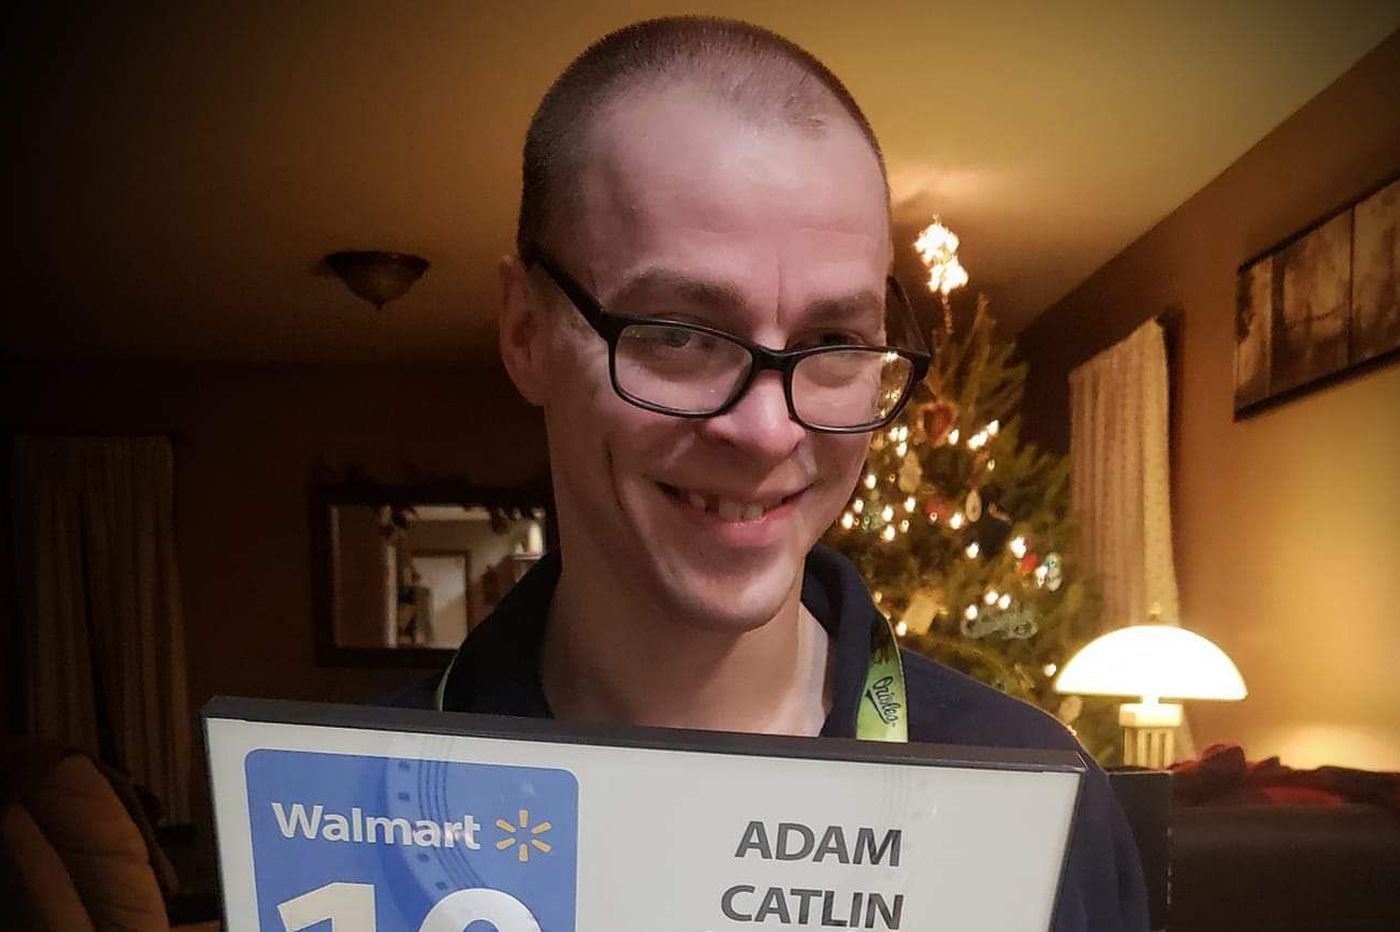 This Pa. man with cerebral palsy found self-worth as a Walmart greeter. Now, he may lose his job.